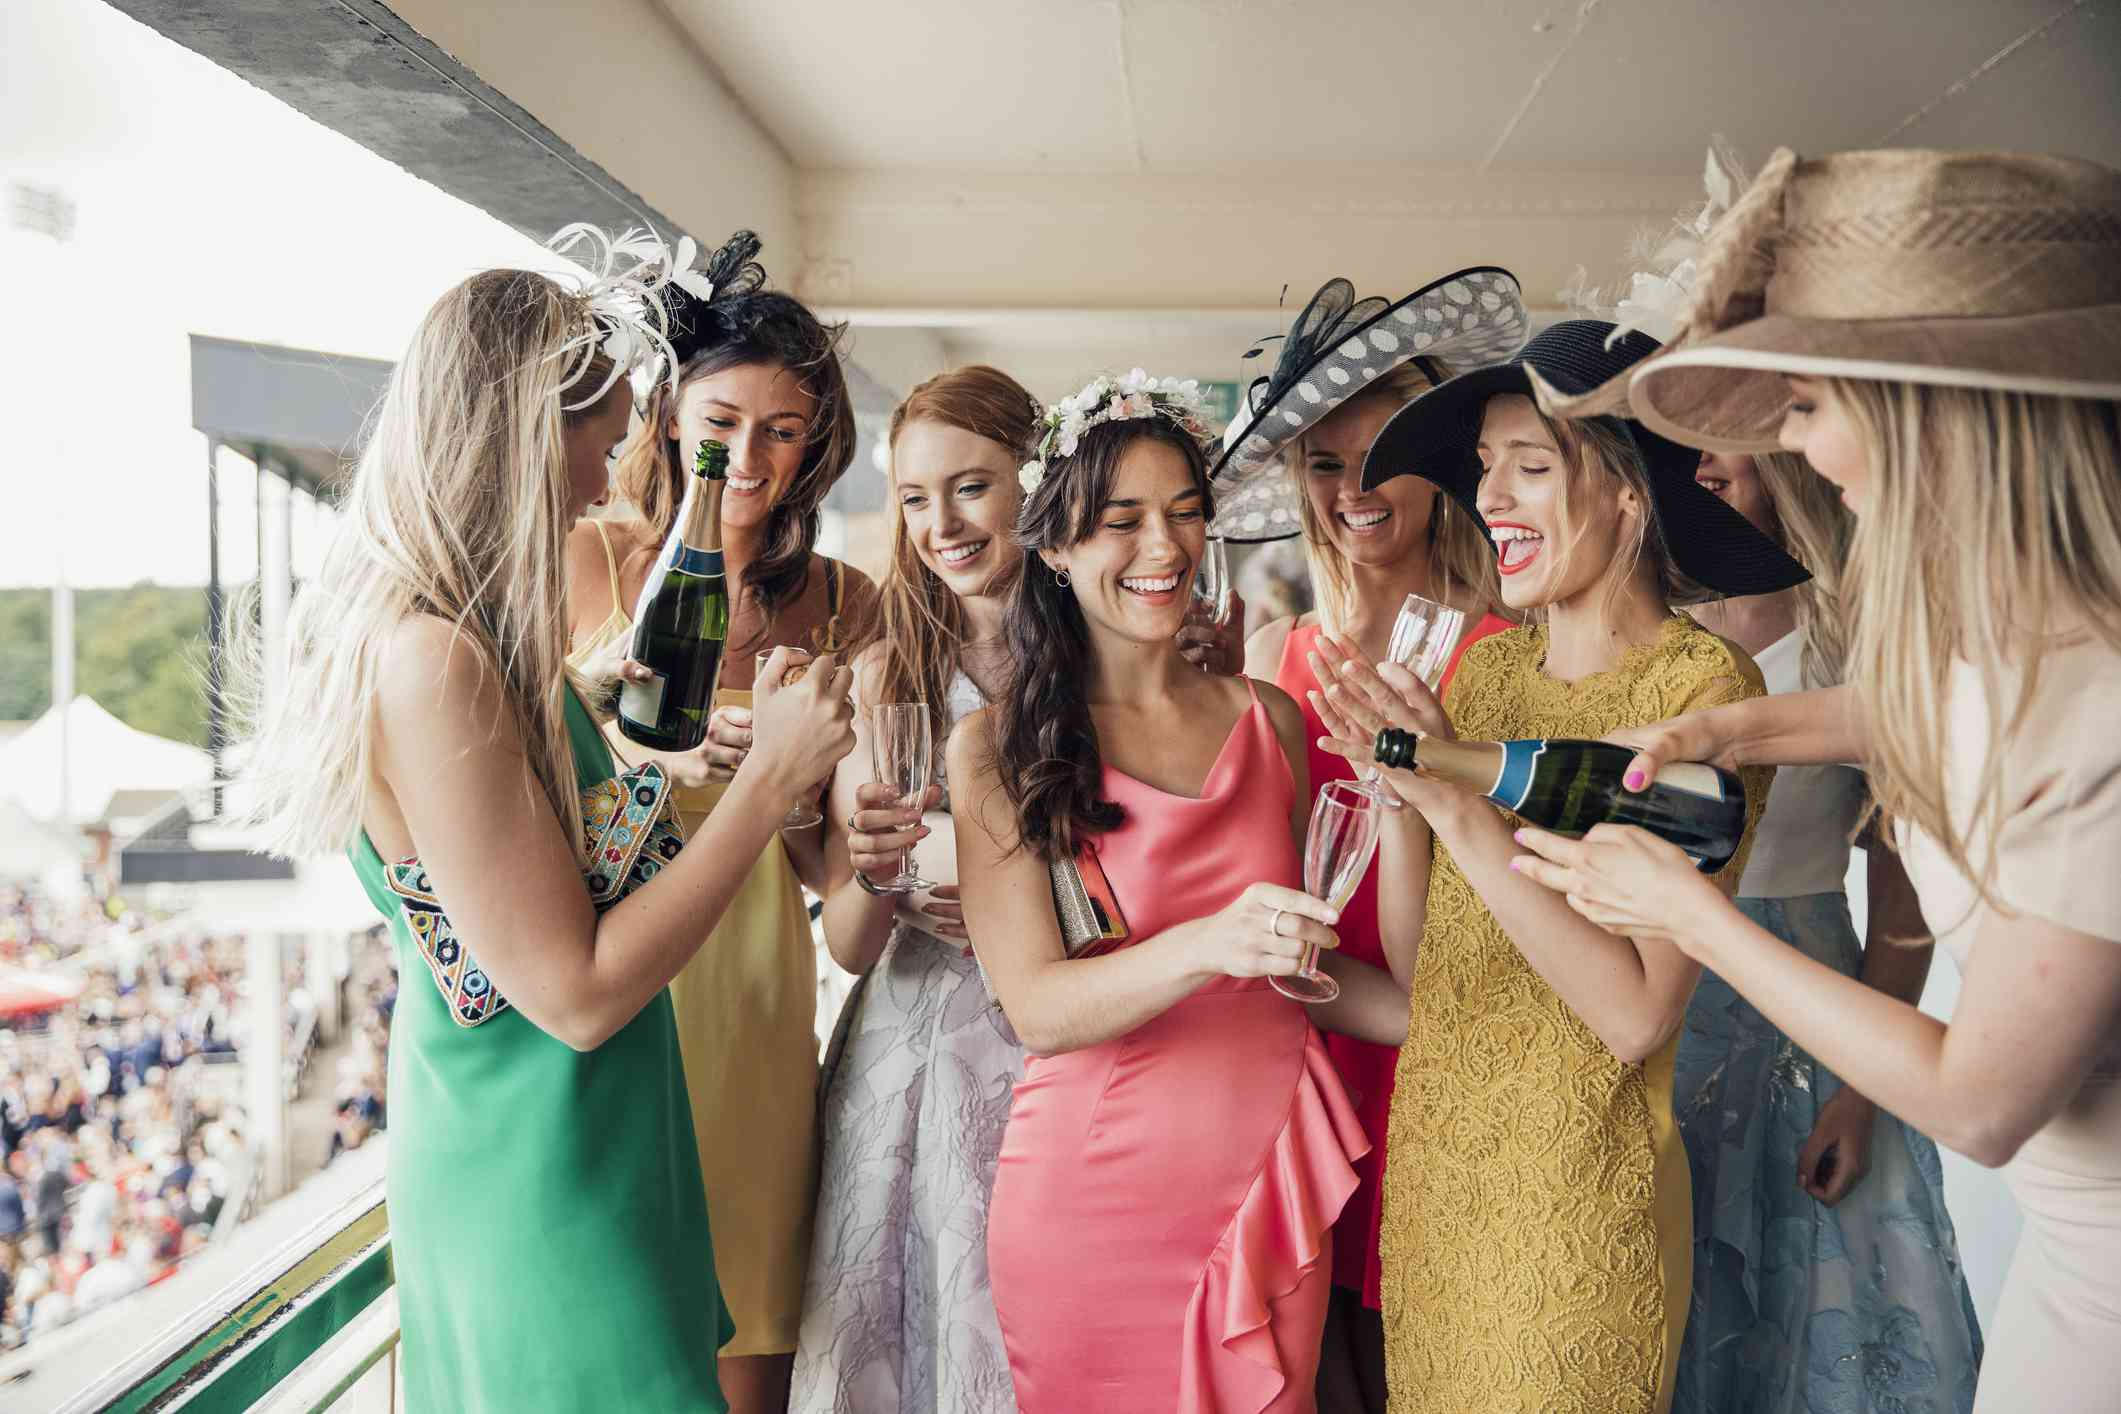 Women at a derby drinking champagne with big hats